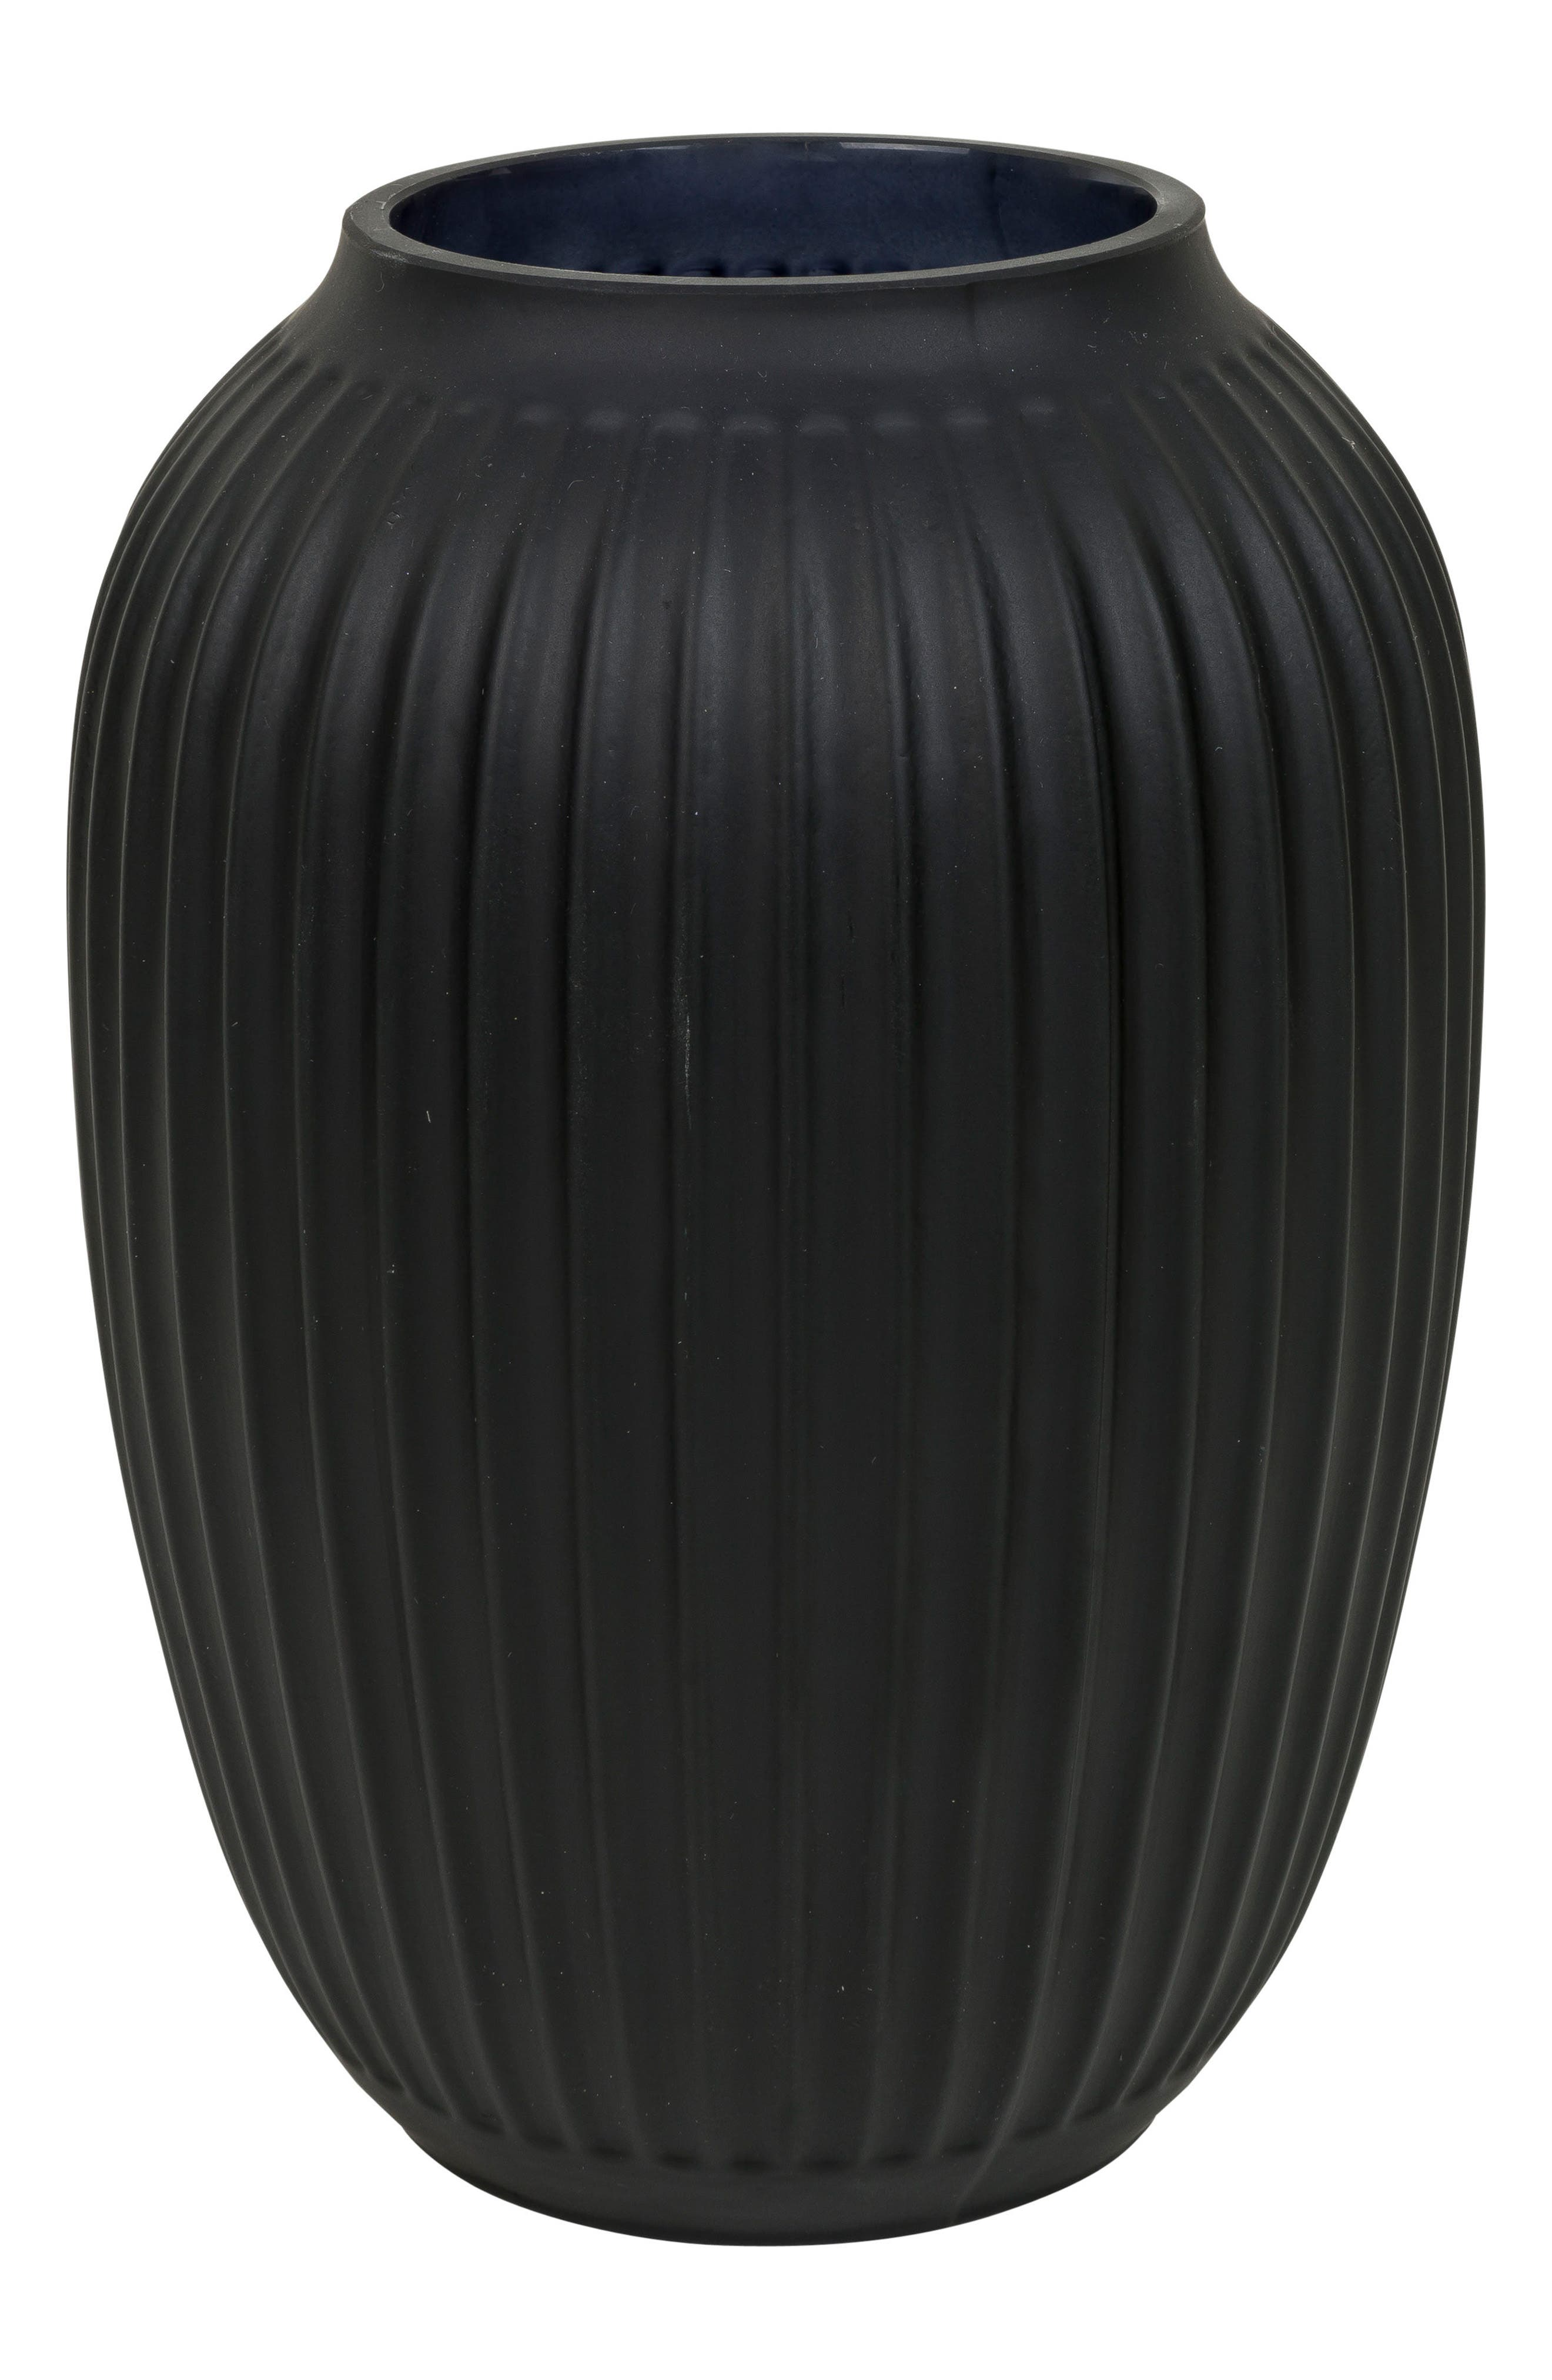 Eightmood Visby Vase